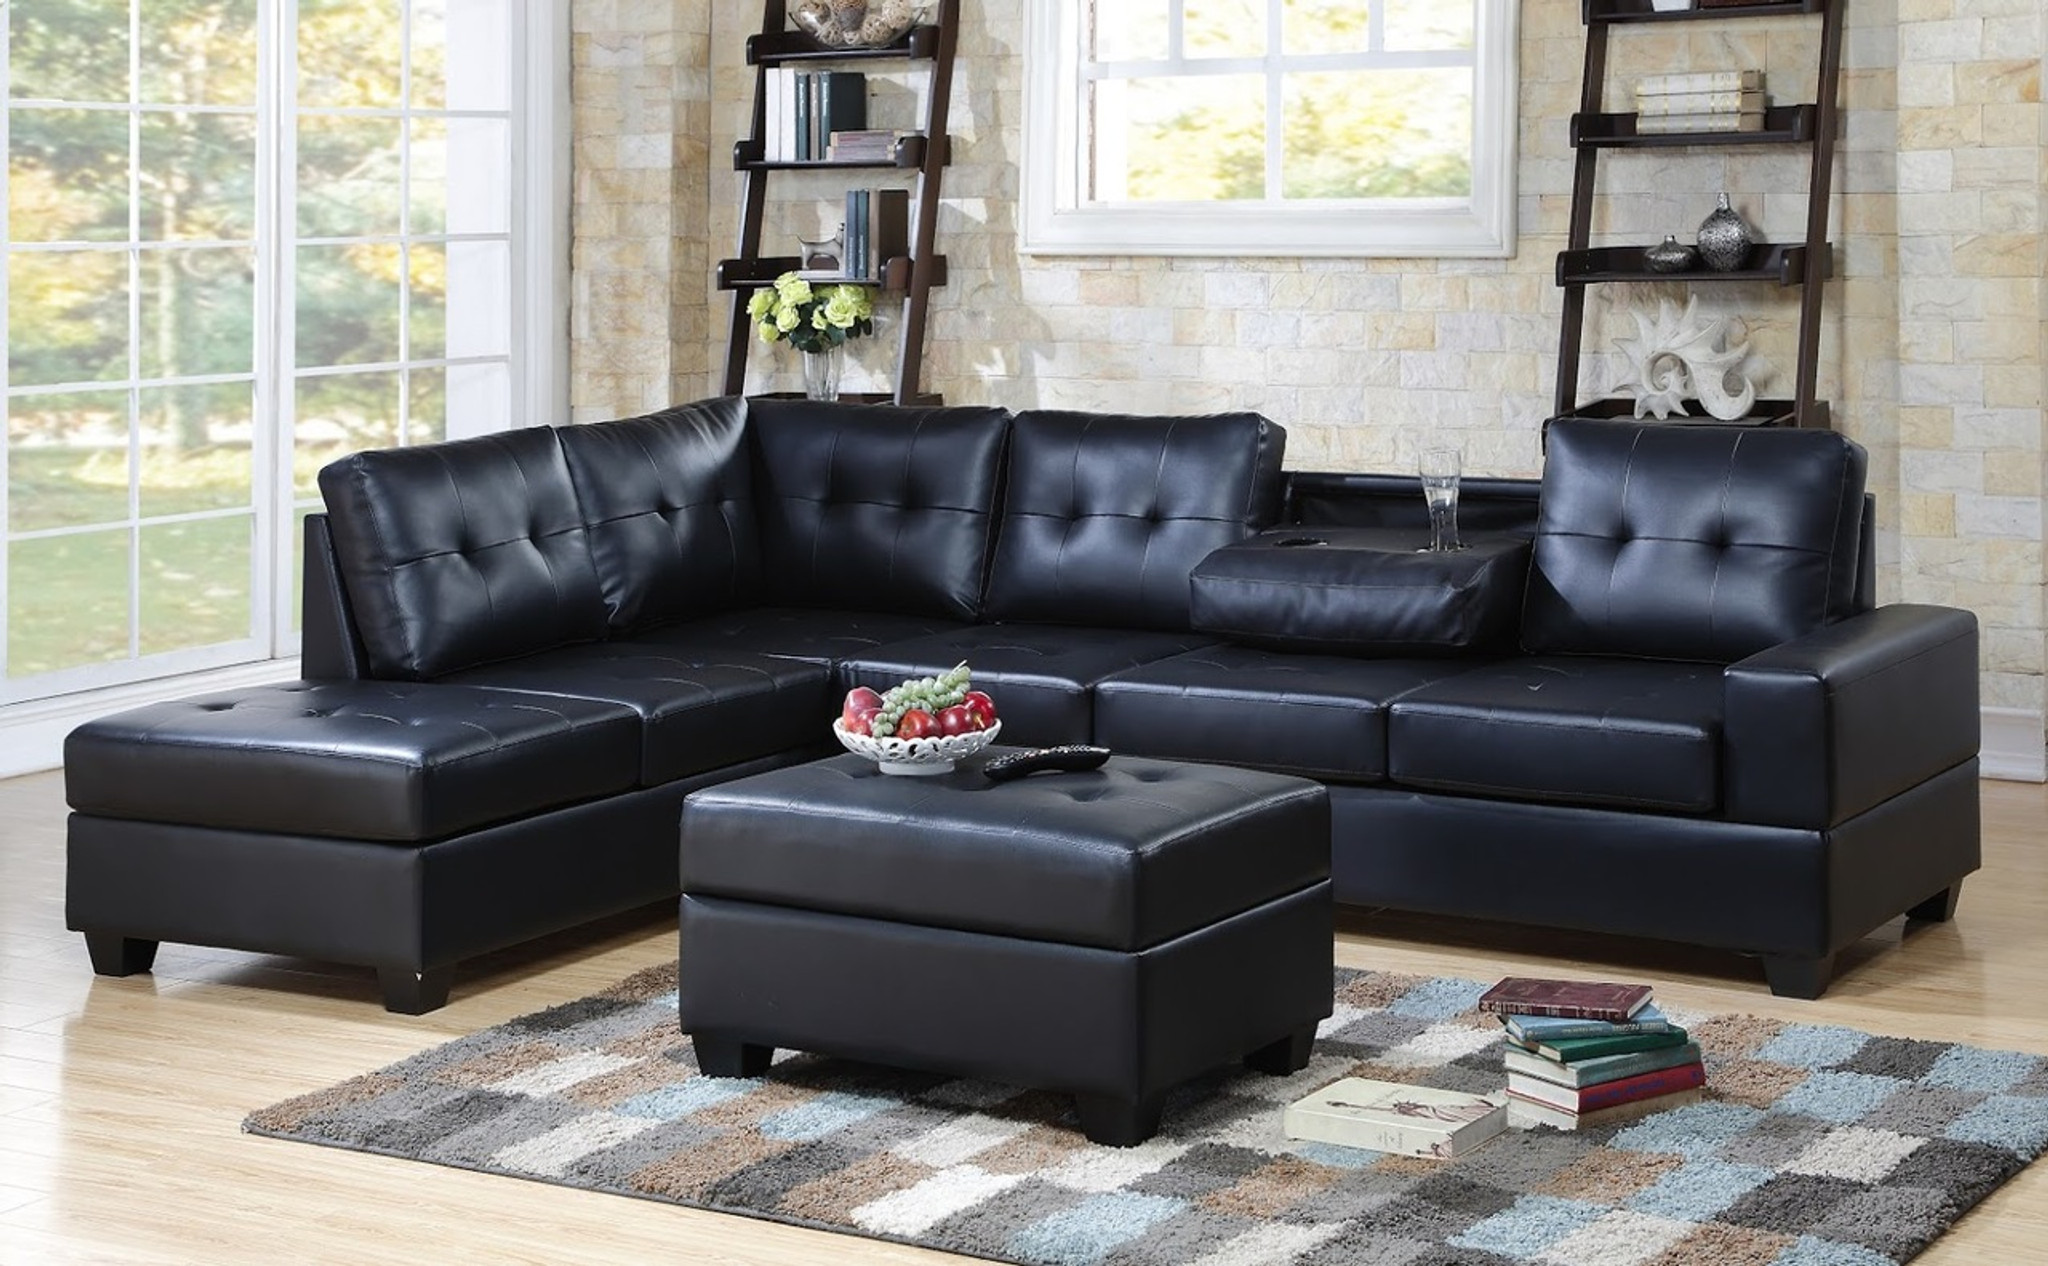 3heights Blk 3 Pcs Heights Sectional With Dropdown Table And